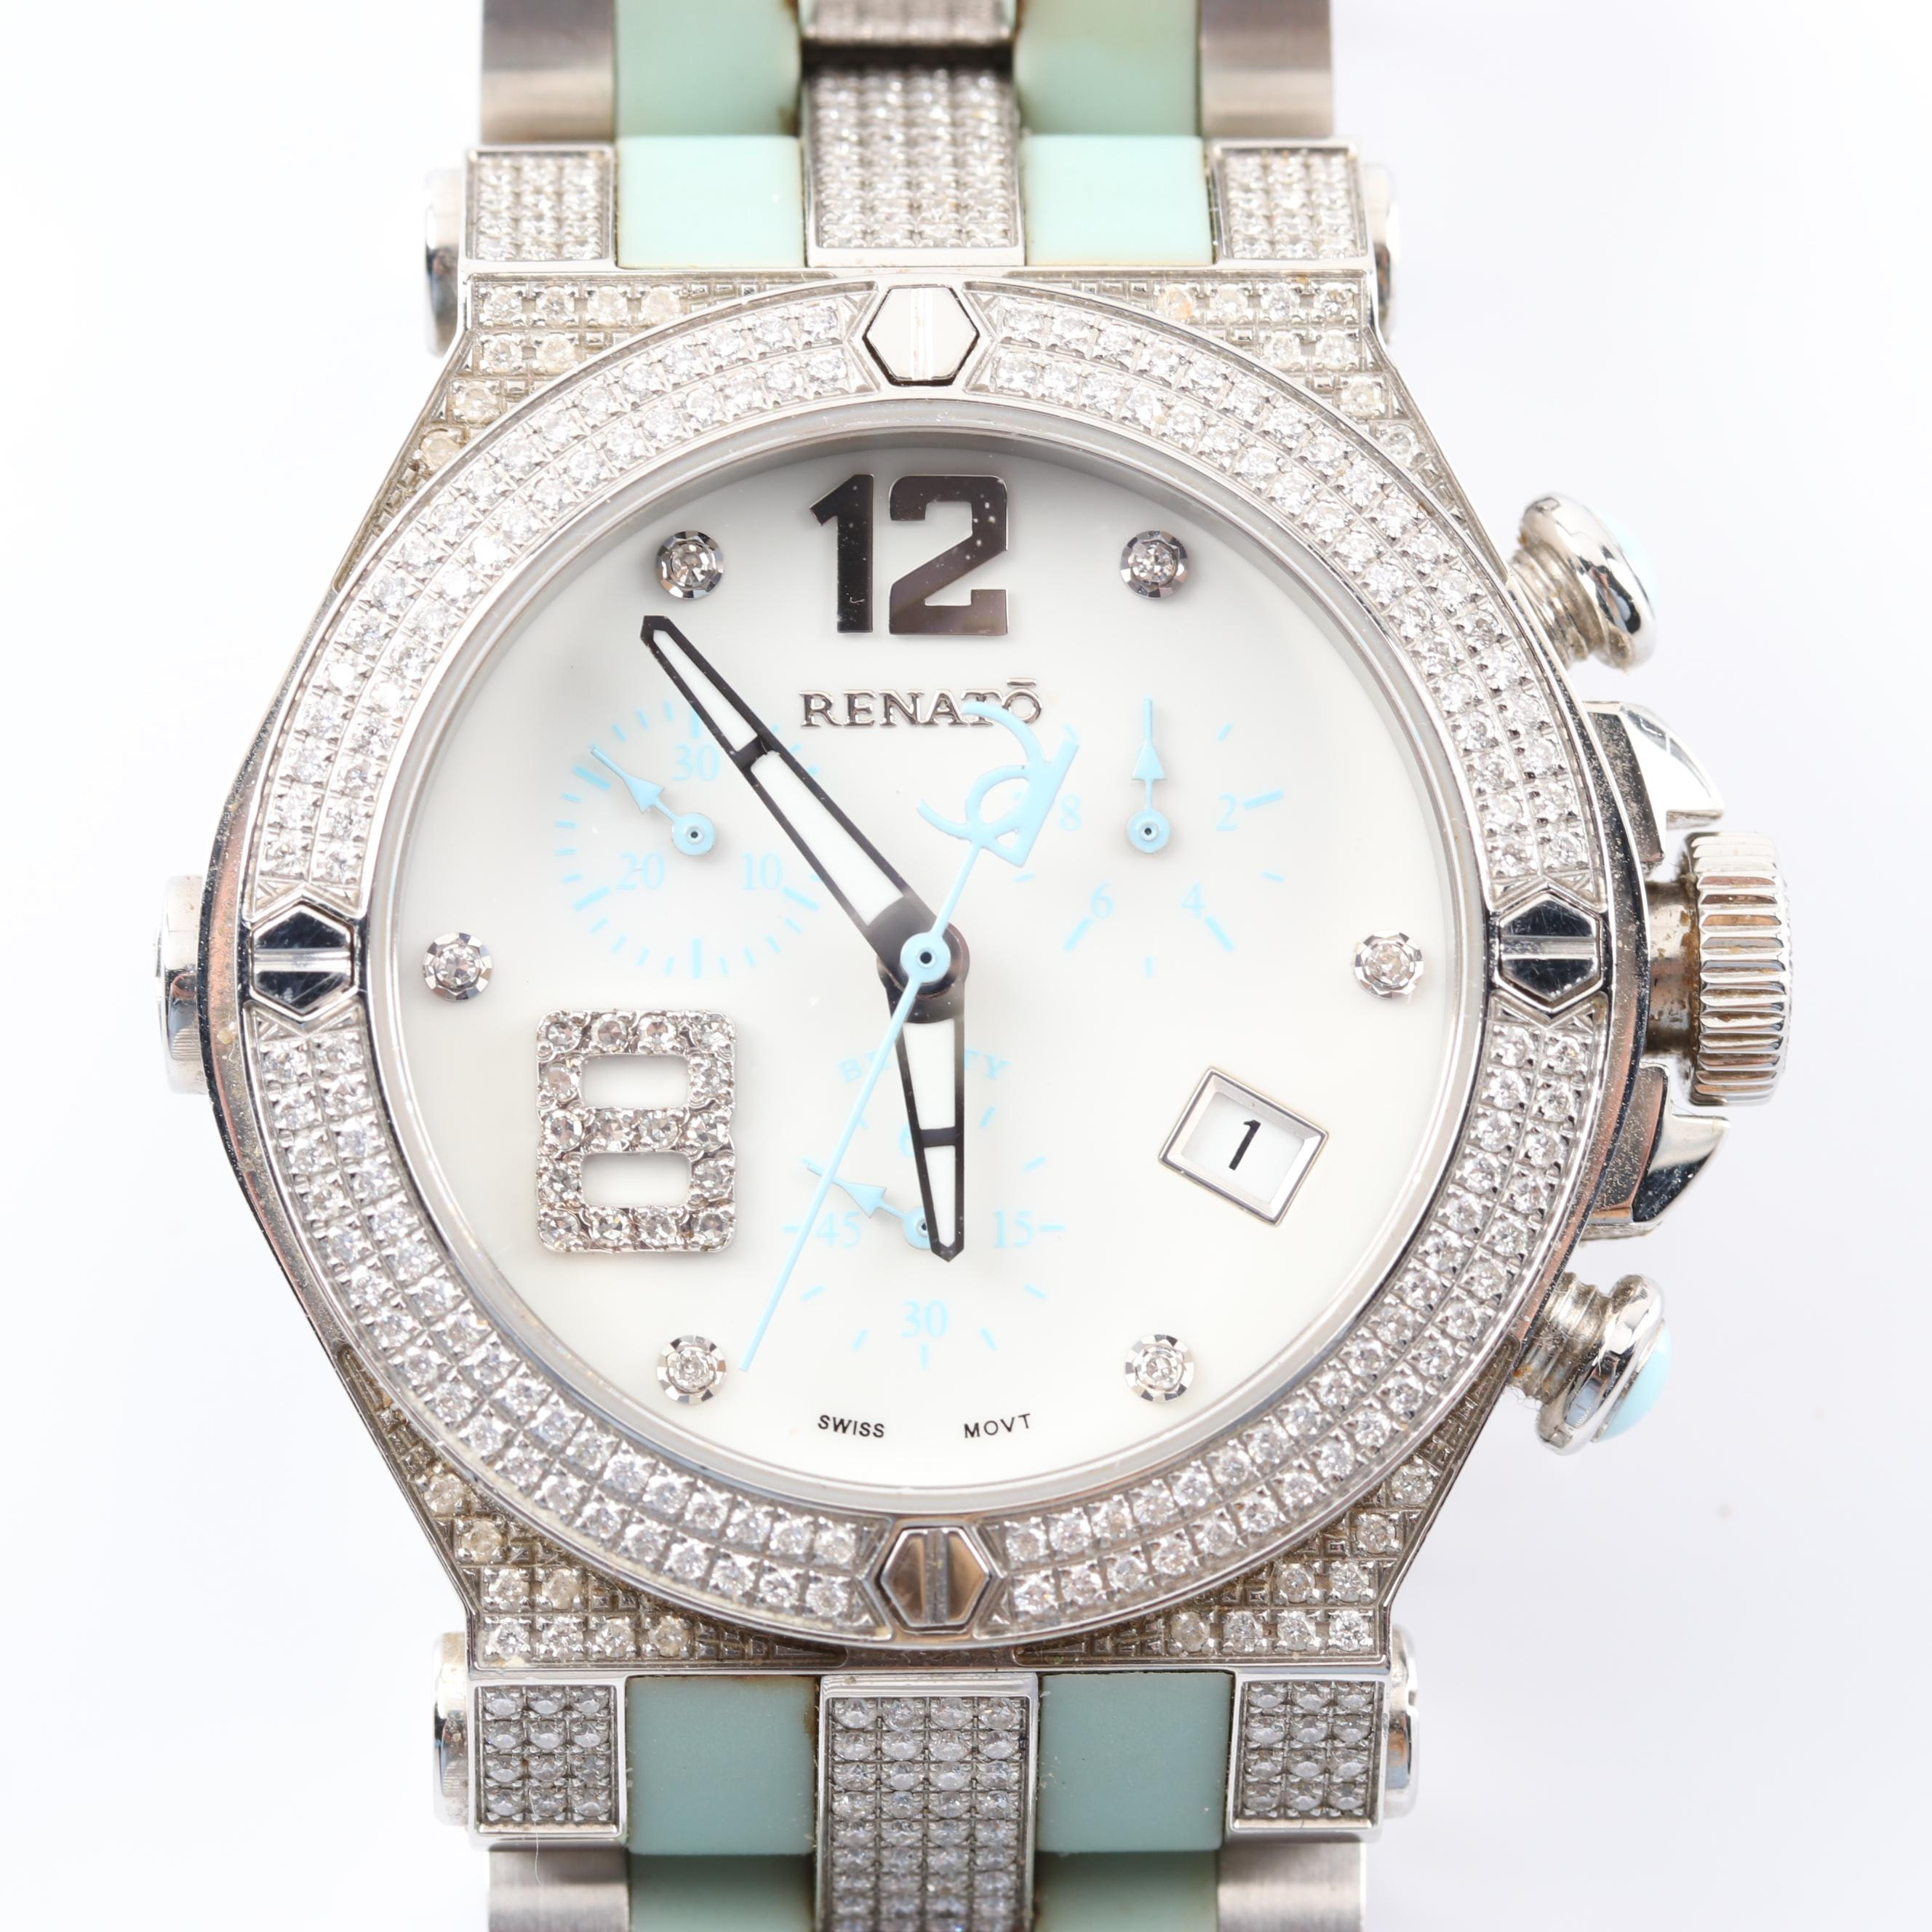 Renato Stainless Steel 1.17 CTW Diamond Wristwatch